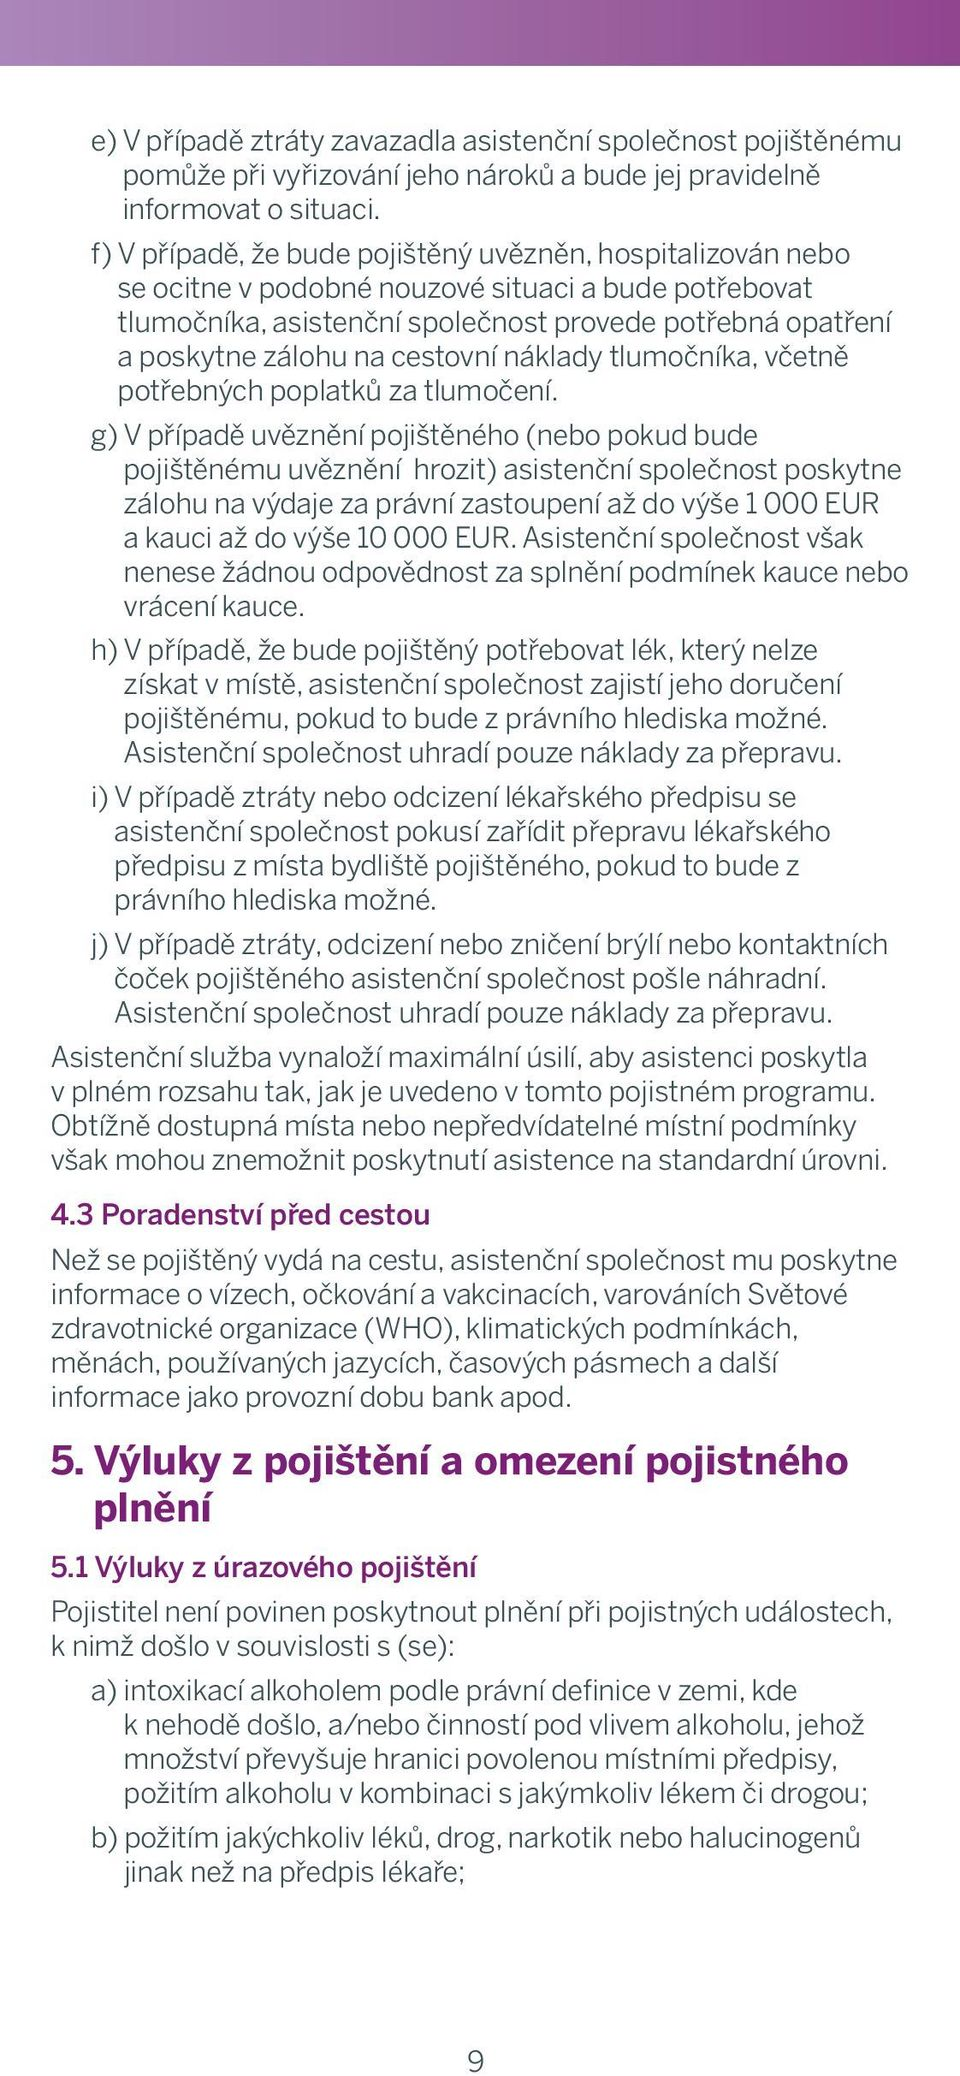 to provide immediate hospital or outpatient treatment f) V případě, by a qualified že bude pojištěný medical doctor uvězněn, to hospitalizován insured person nebo and if such se a ocitne treatment v